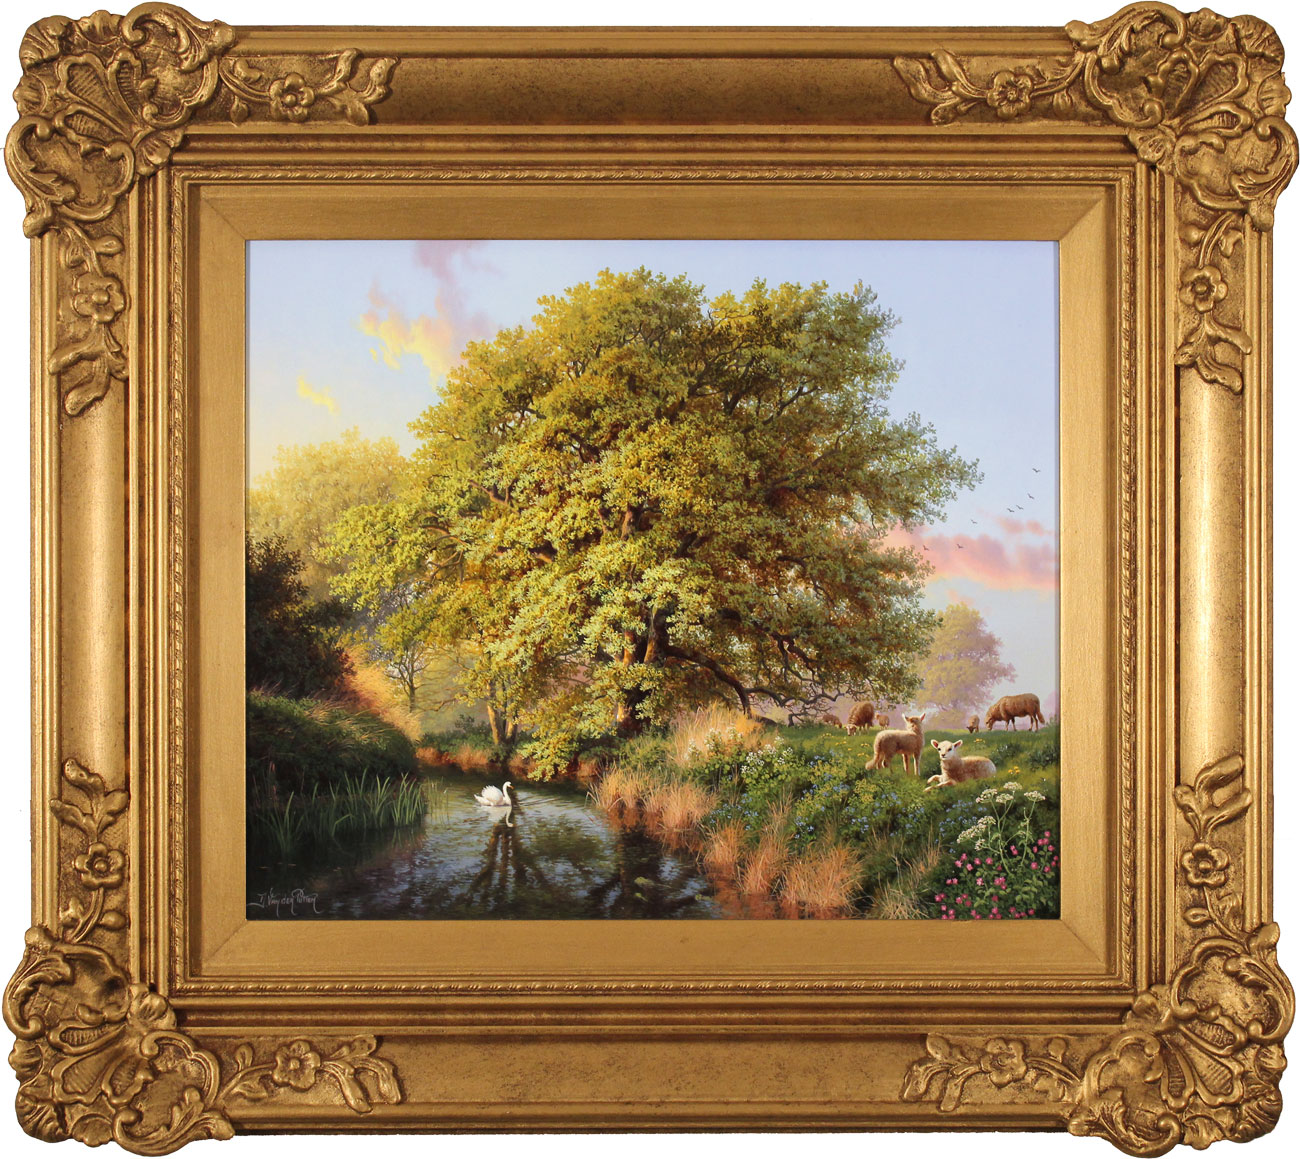 Daniel Van Der Putten, Original oil painting on panel, Beside the River Swale, Yorkshire, click to enlarge